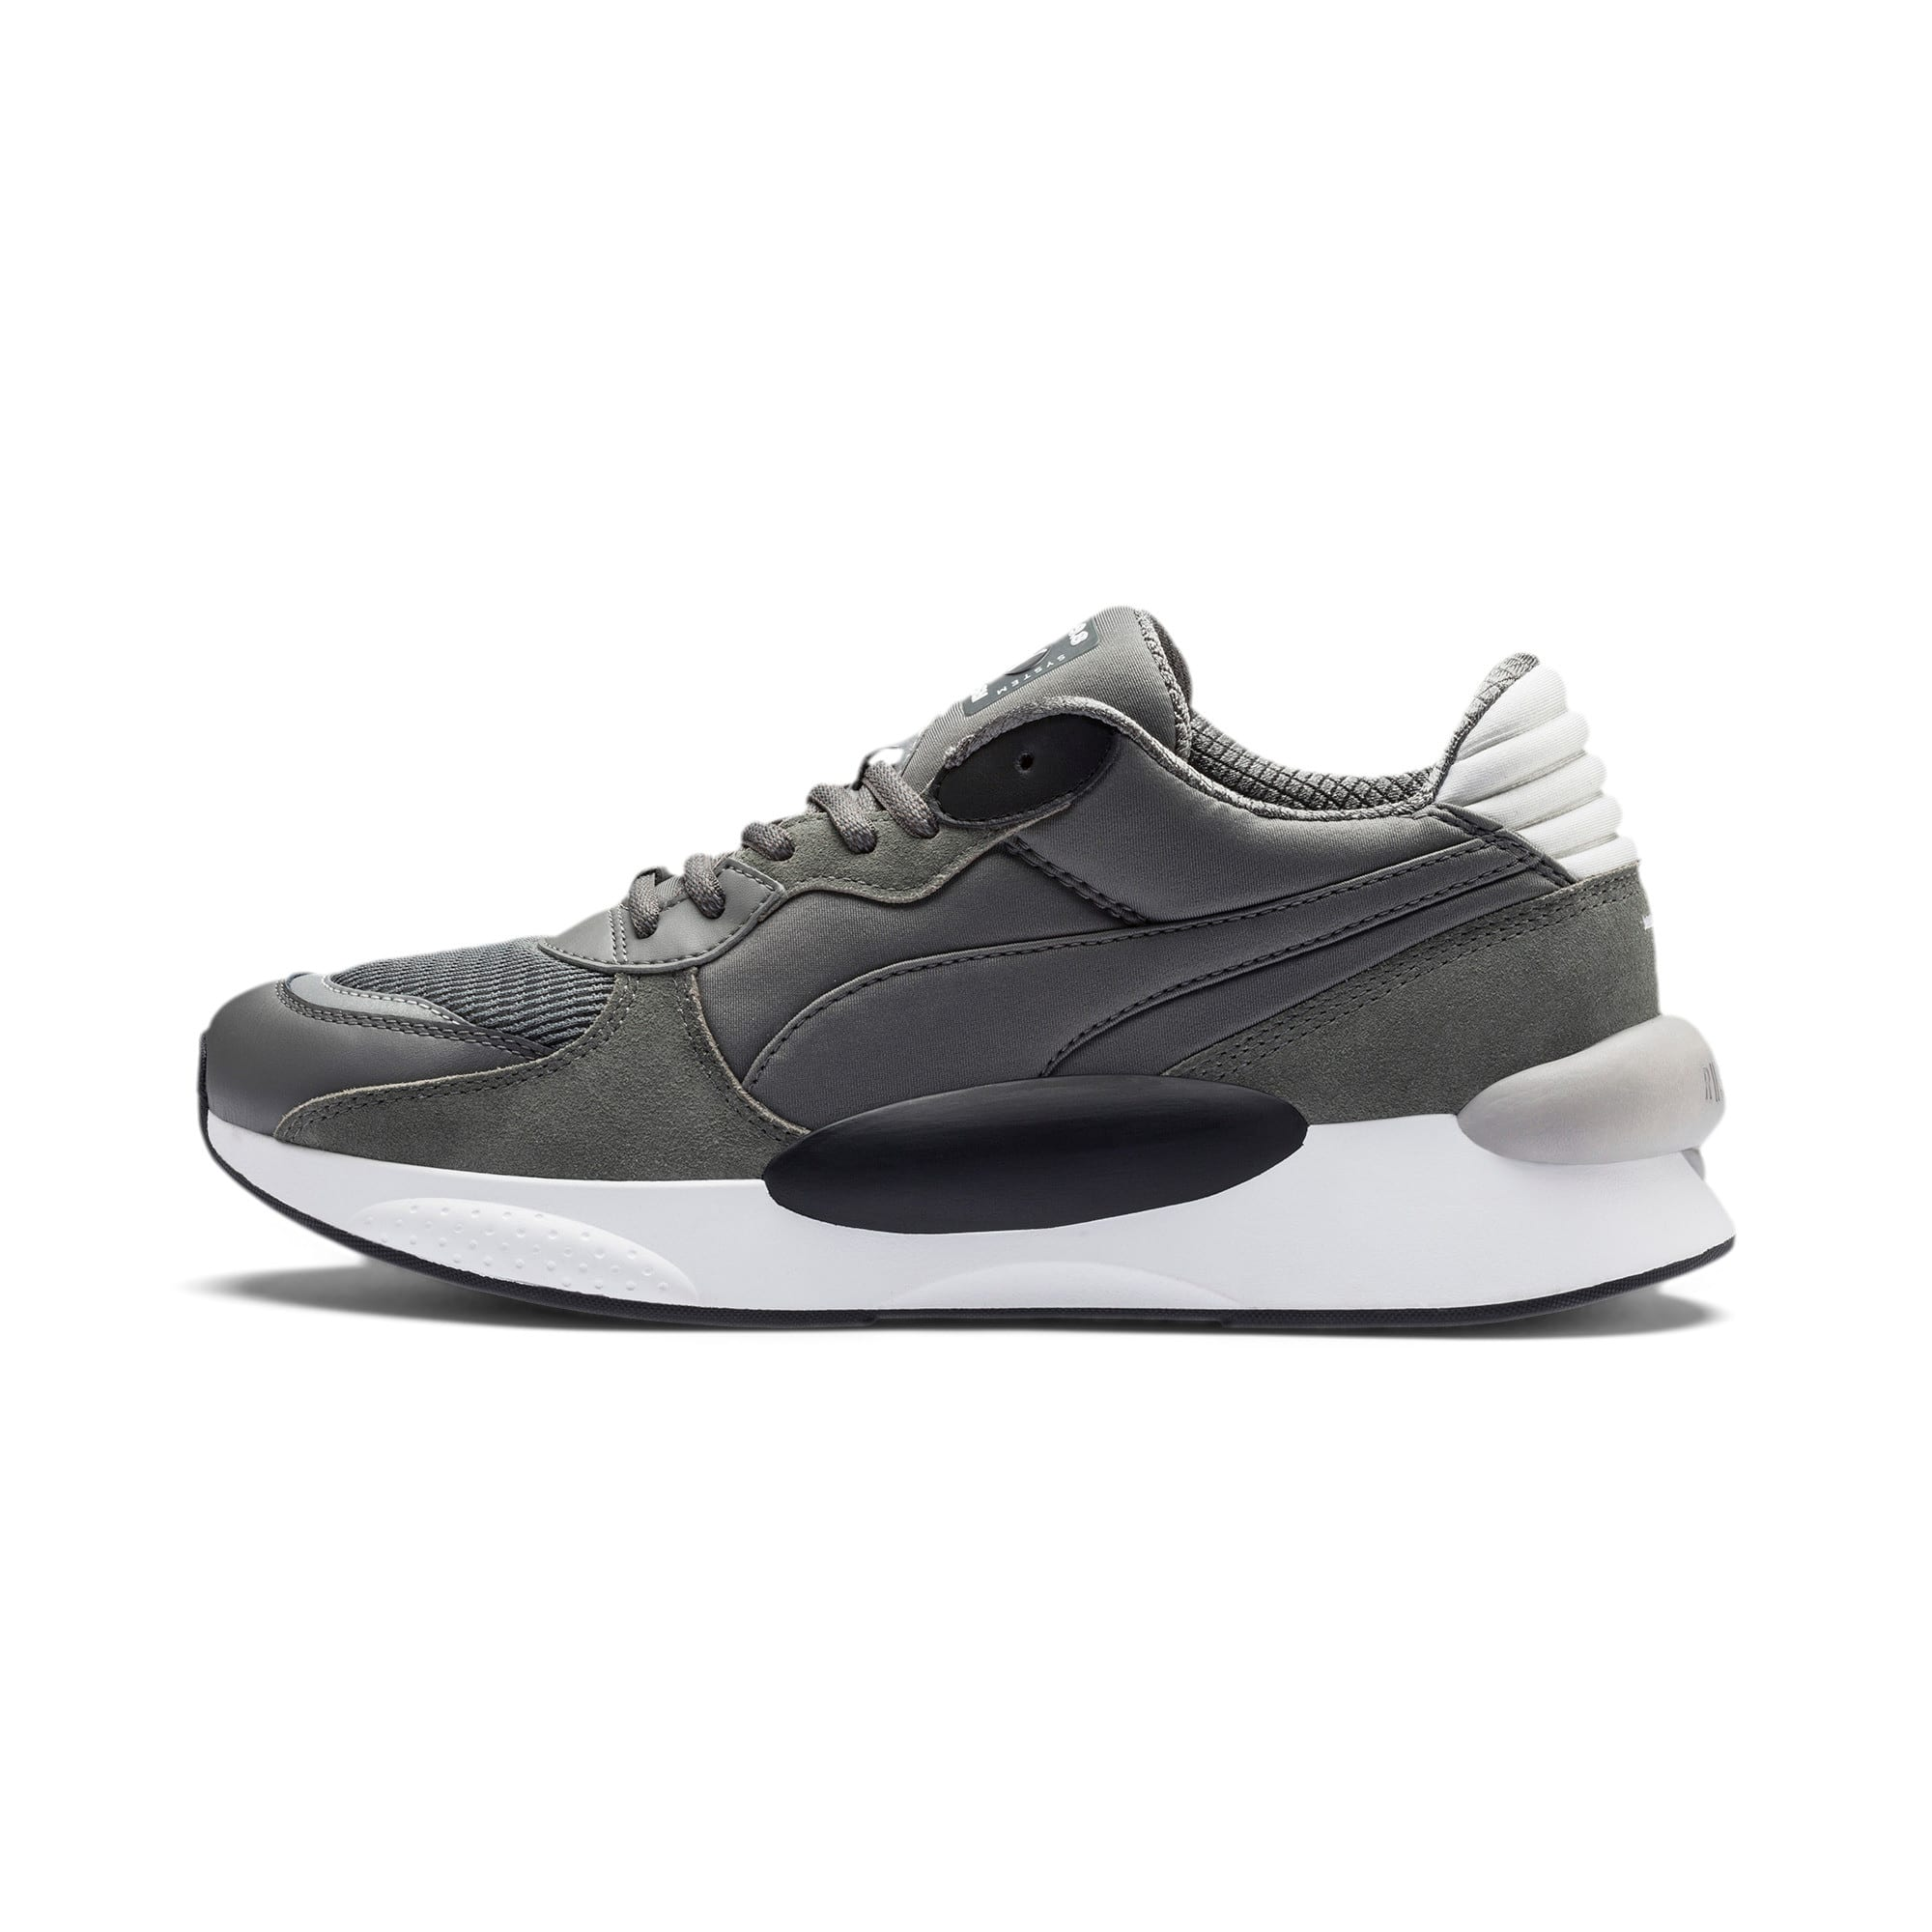 Thumbnail 1 of RS 9.8 Gravity Trainers, CASTLEROCK-Puma Black, medium